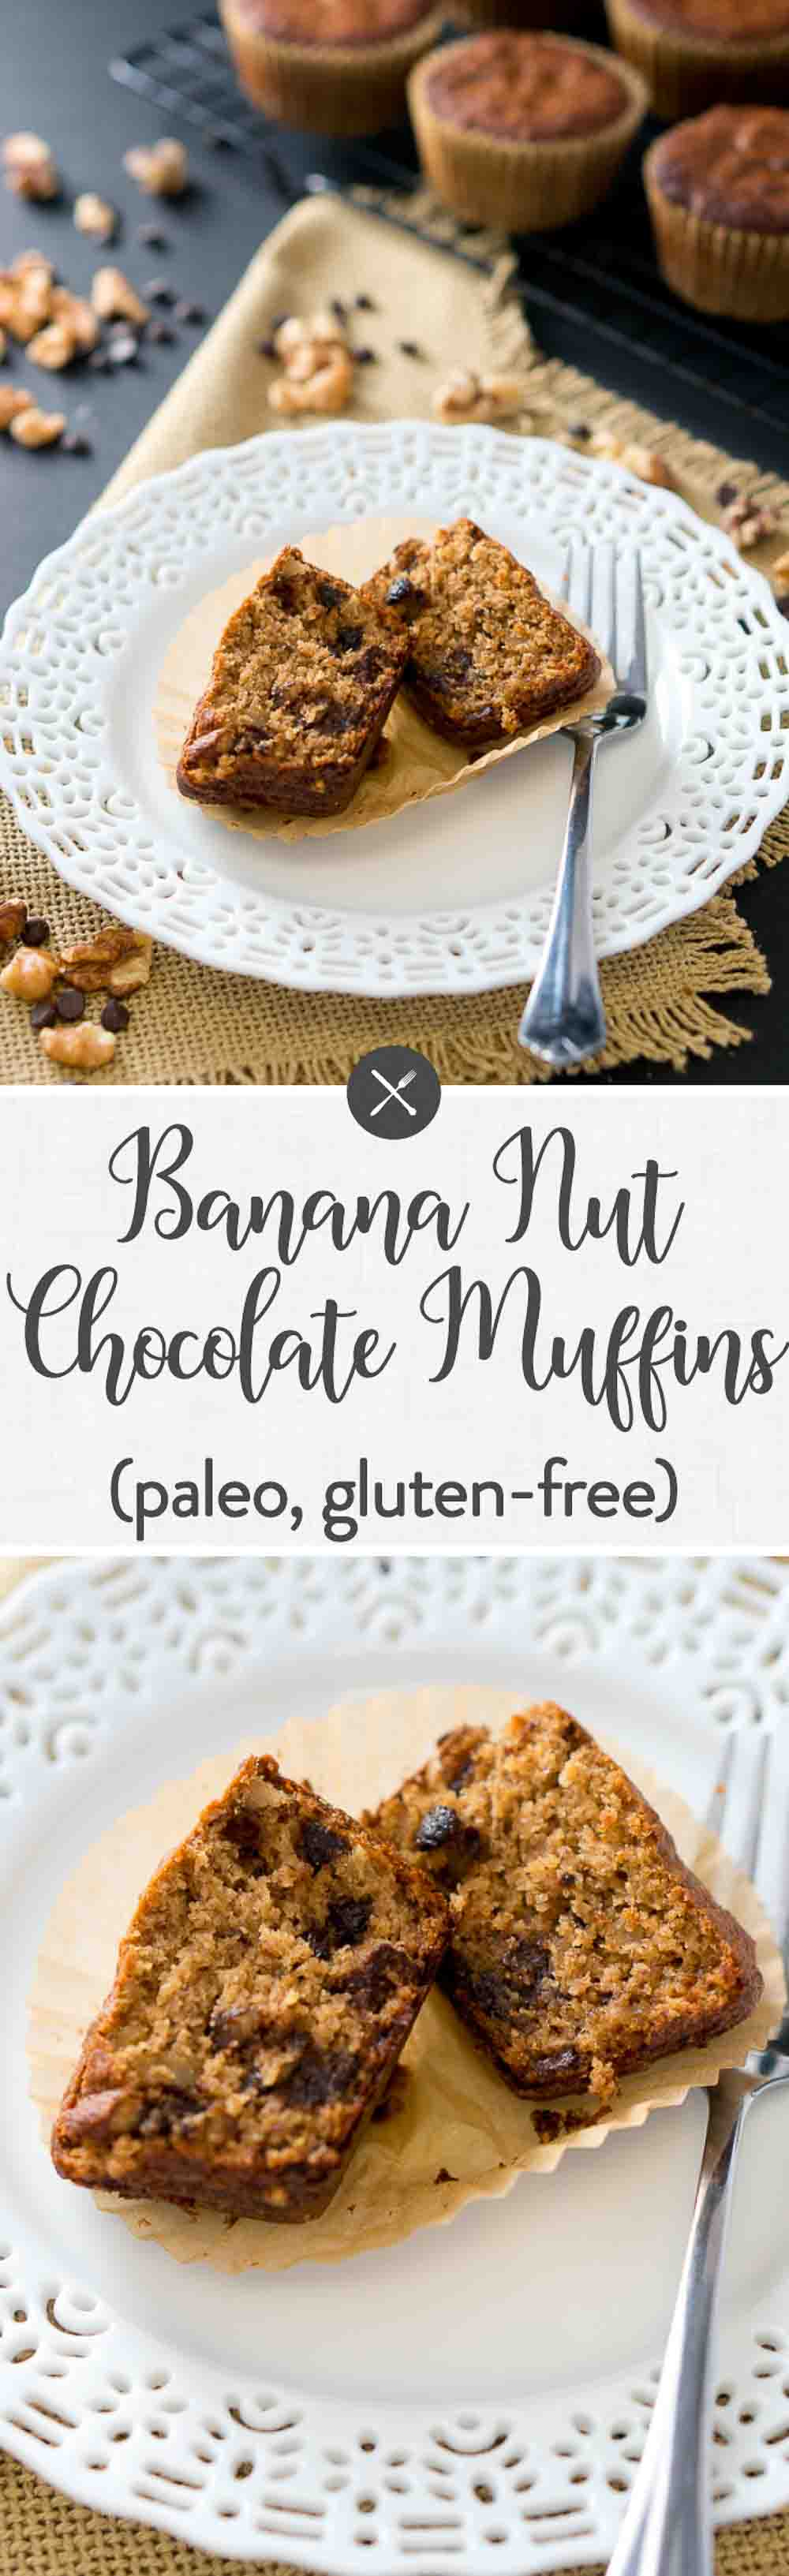 Rich, soft, and moist Paleo Banana Nut Chocolate Muffins - they are gluten free, grain free, dairy free, and Paleo. So delicious! #muffins #snack #glutenfree #dairyfree #dessert #healthy #chocolate #paleo